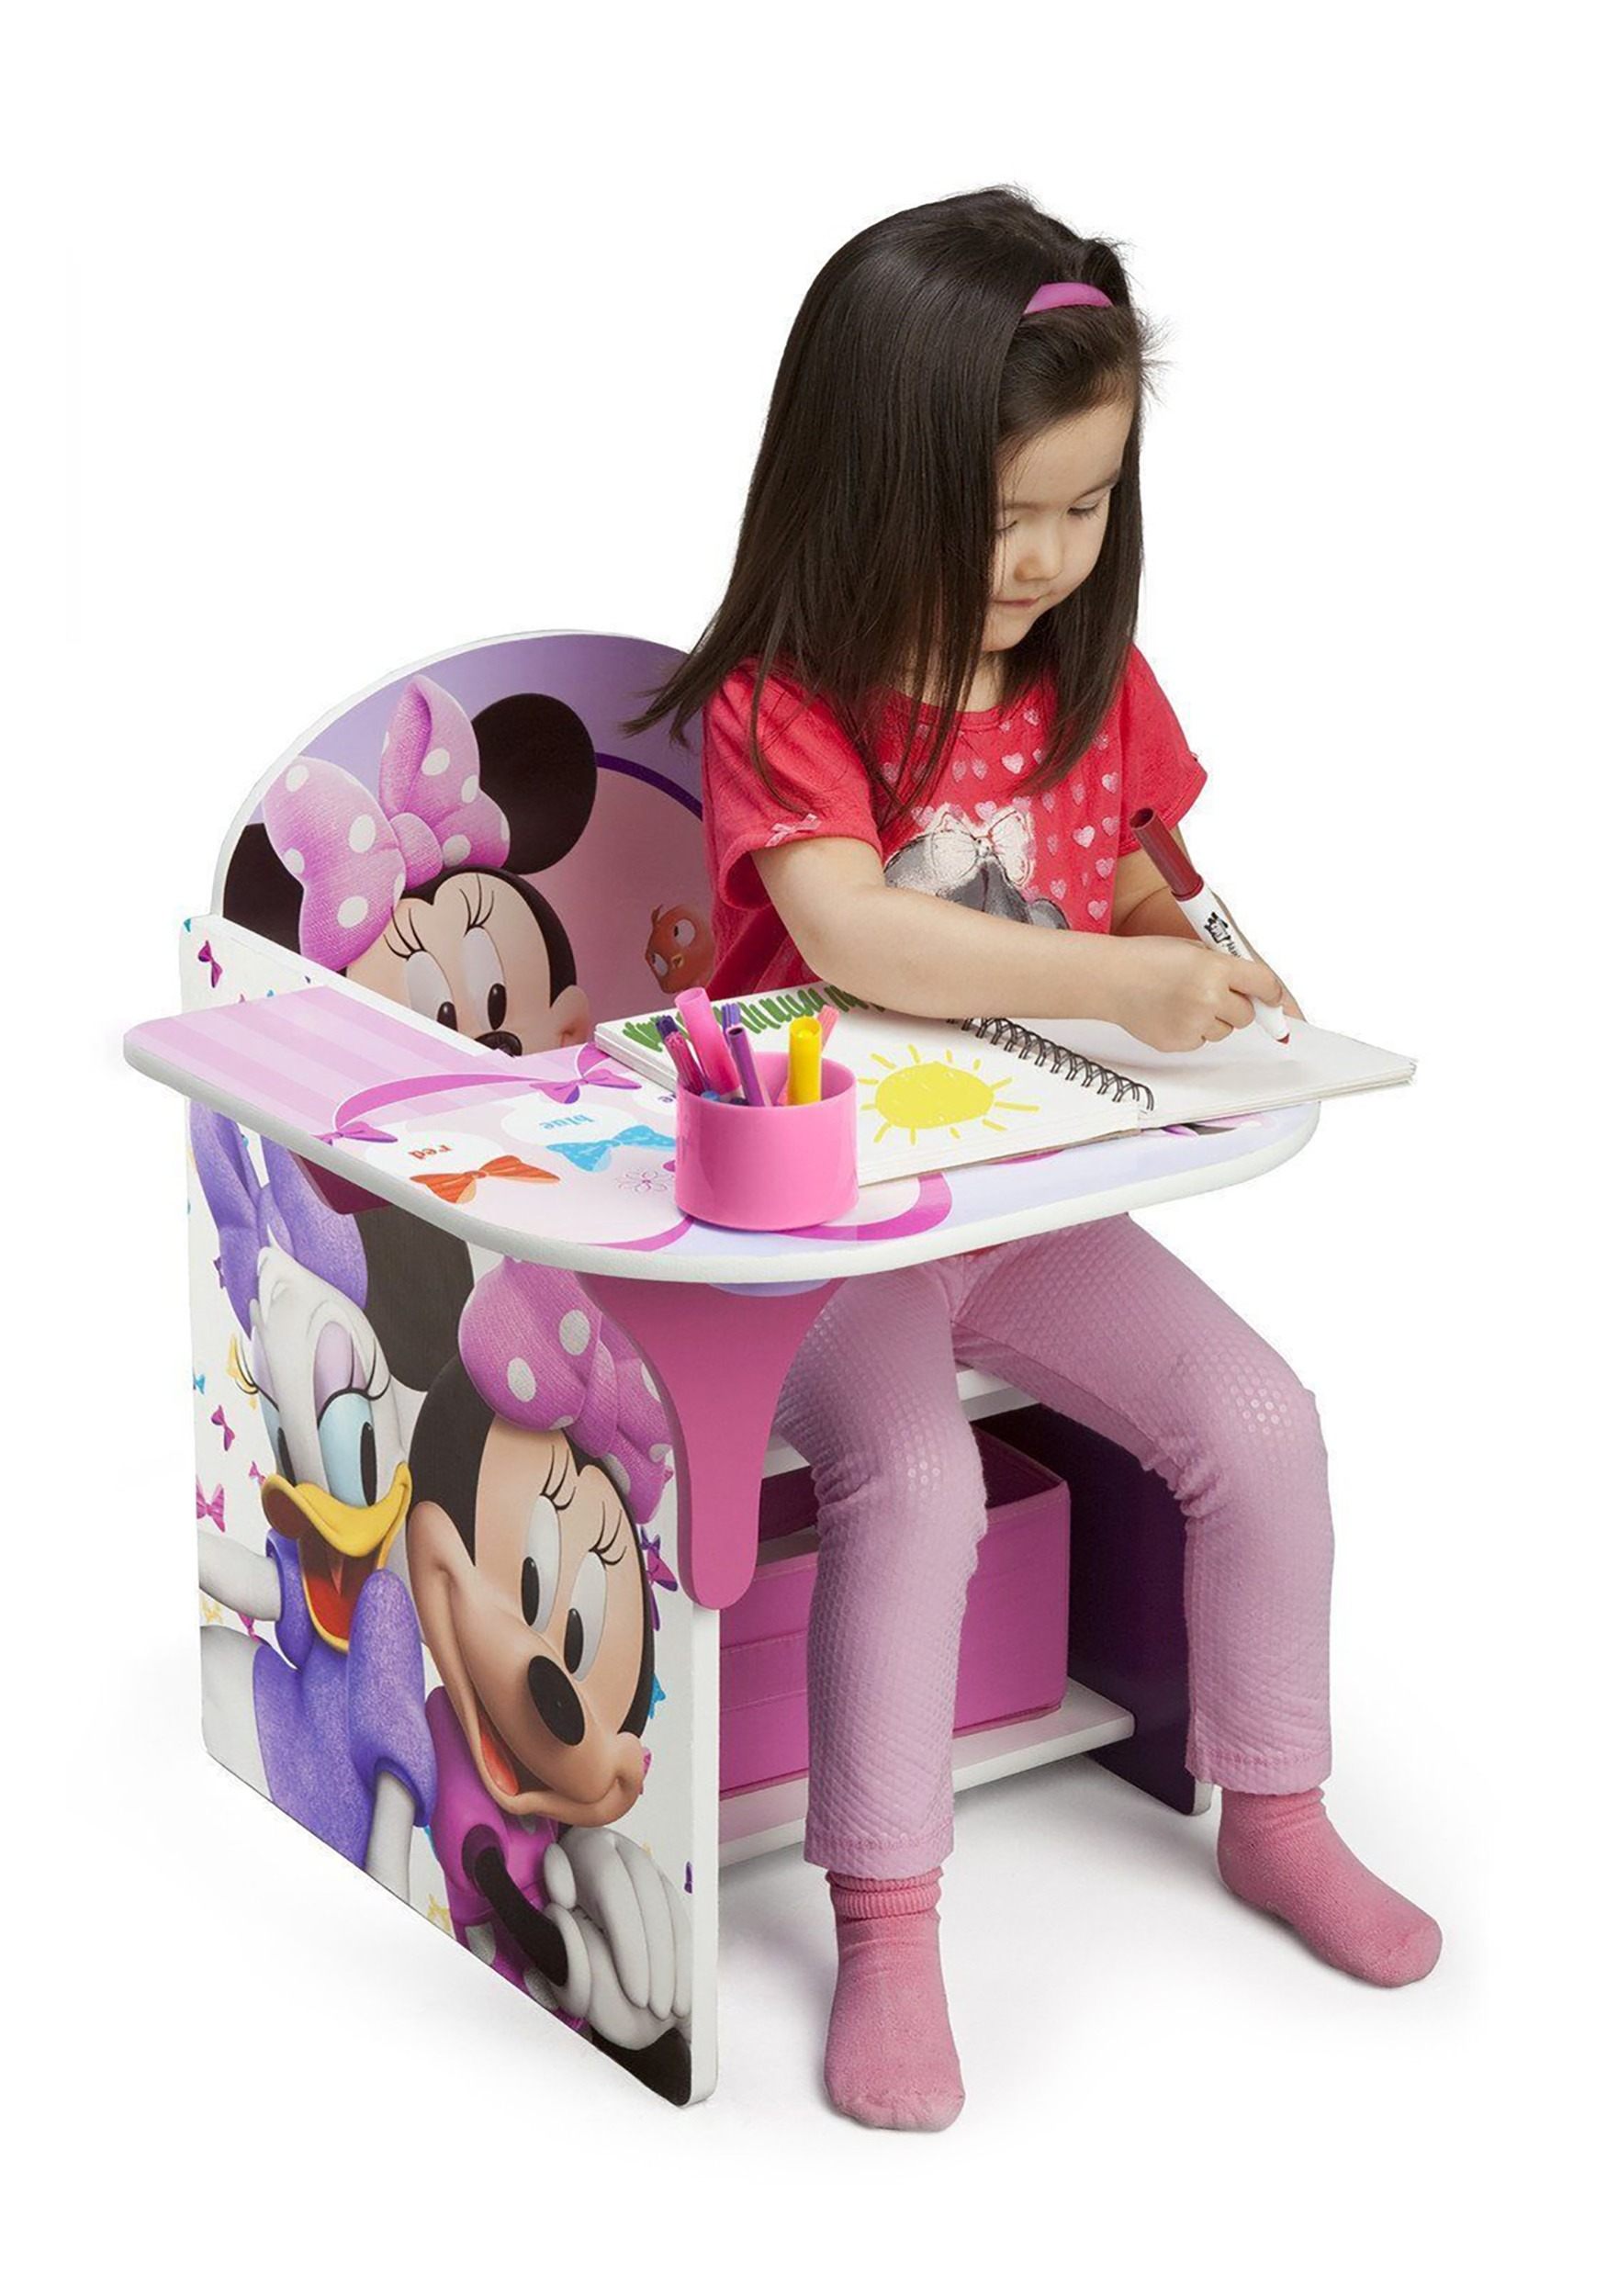 Minnie Mouse Chair Desk With Storage Bin3